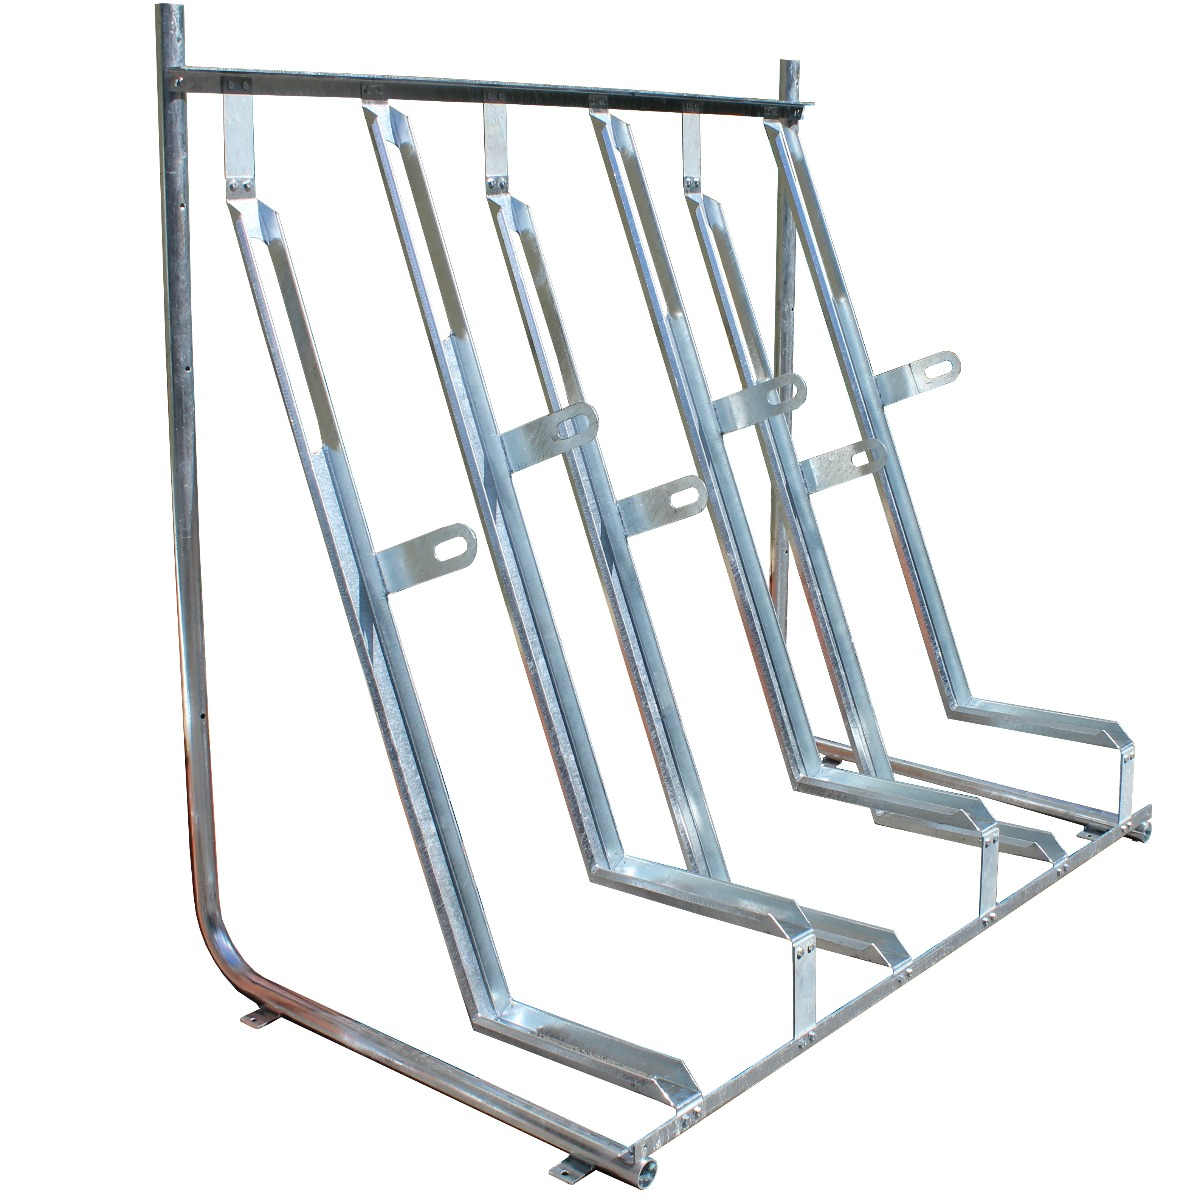 Semi Vertical Cycle Stands